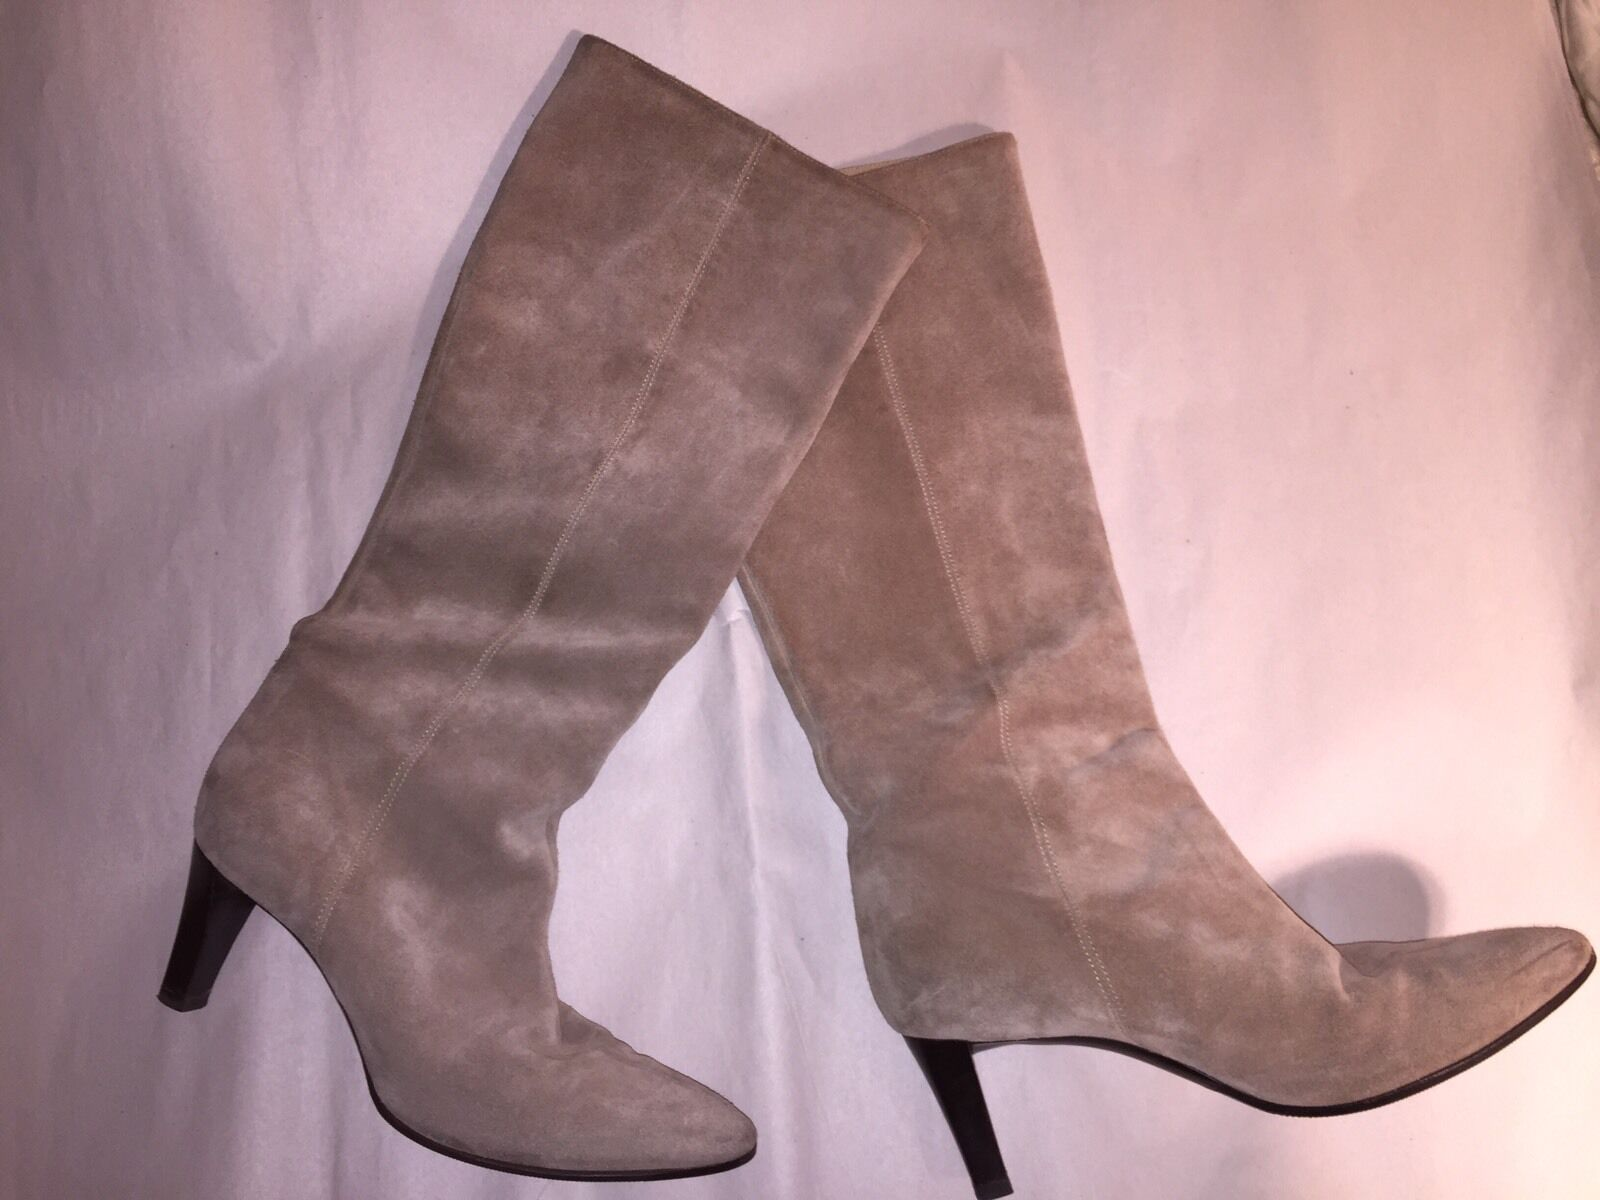 pre-loved authentic BALENCIAGA size 39 natural bone SUEDE high heel BOOTS $1800